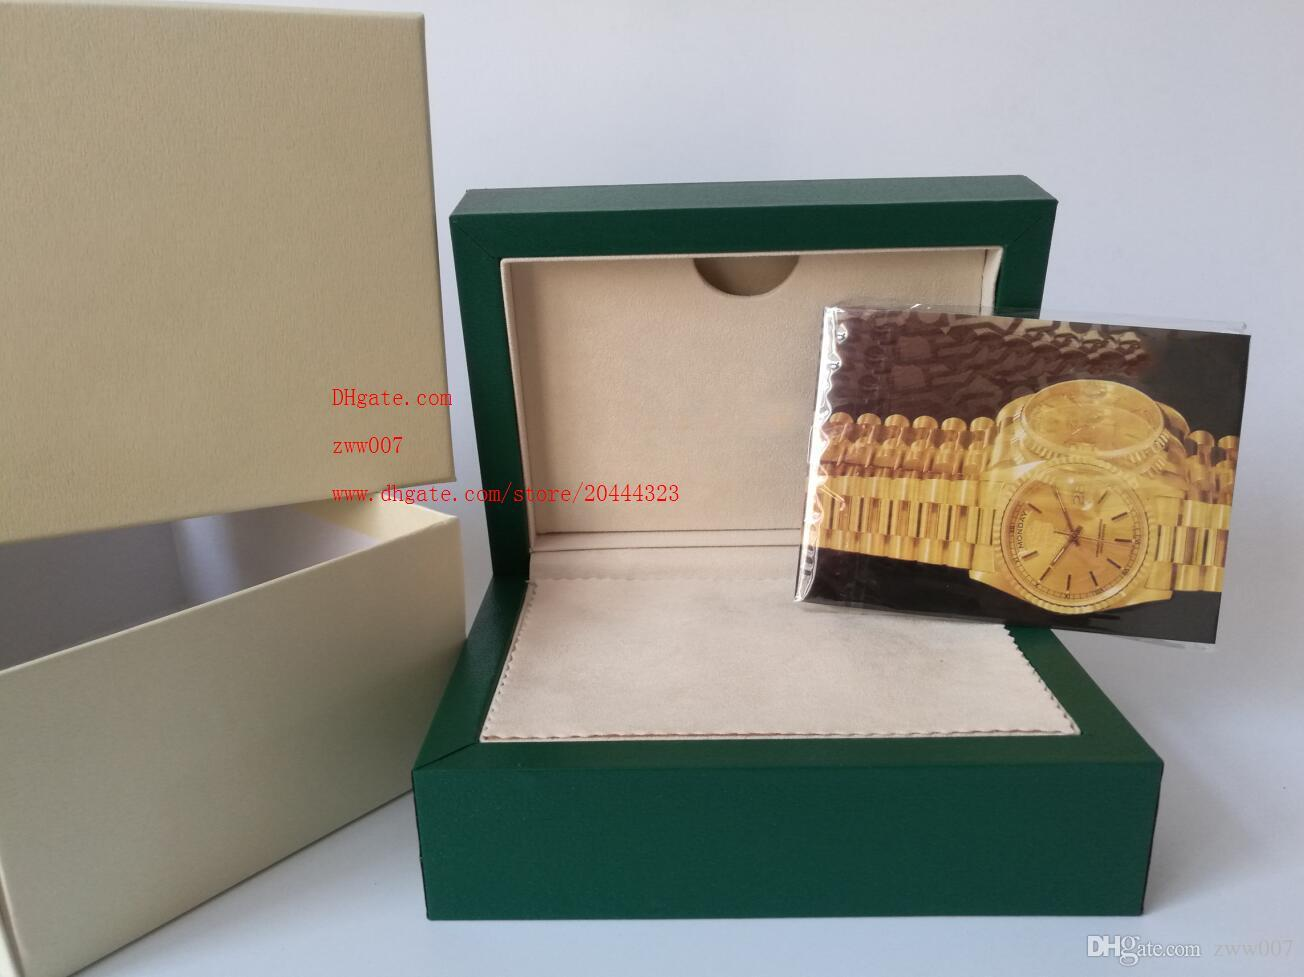 High Quality Green Watch Original Box Papers Handbag Card Boxes 0.8KG For 116610 116660 116710 116500 116520 3135 3255 4130 Watches